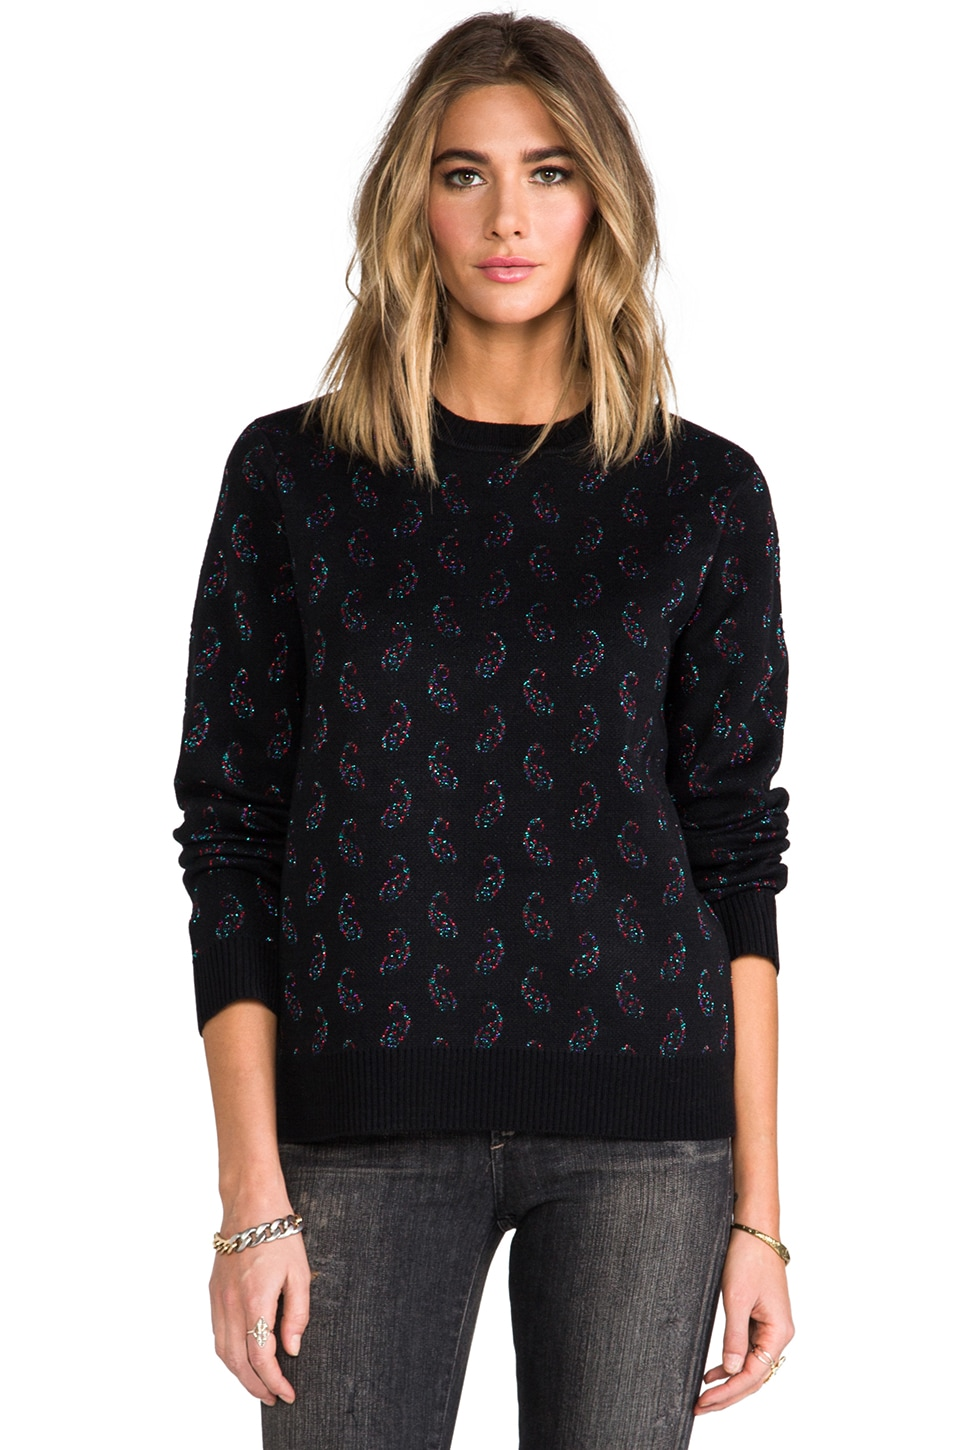 Obey Wasteland Crew Sweater in Black